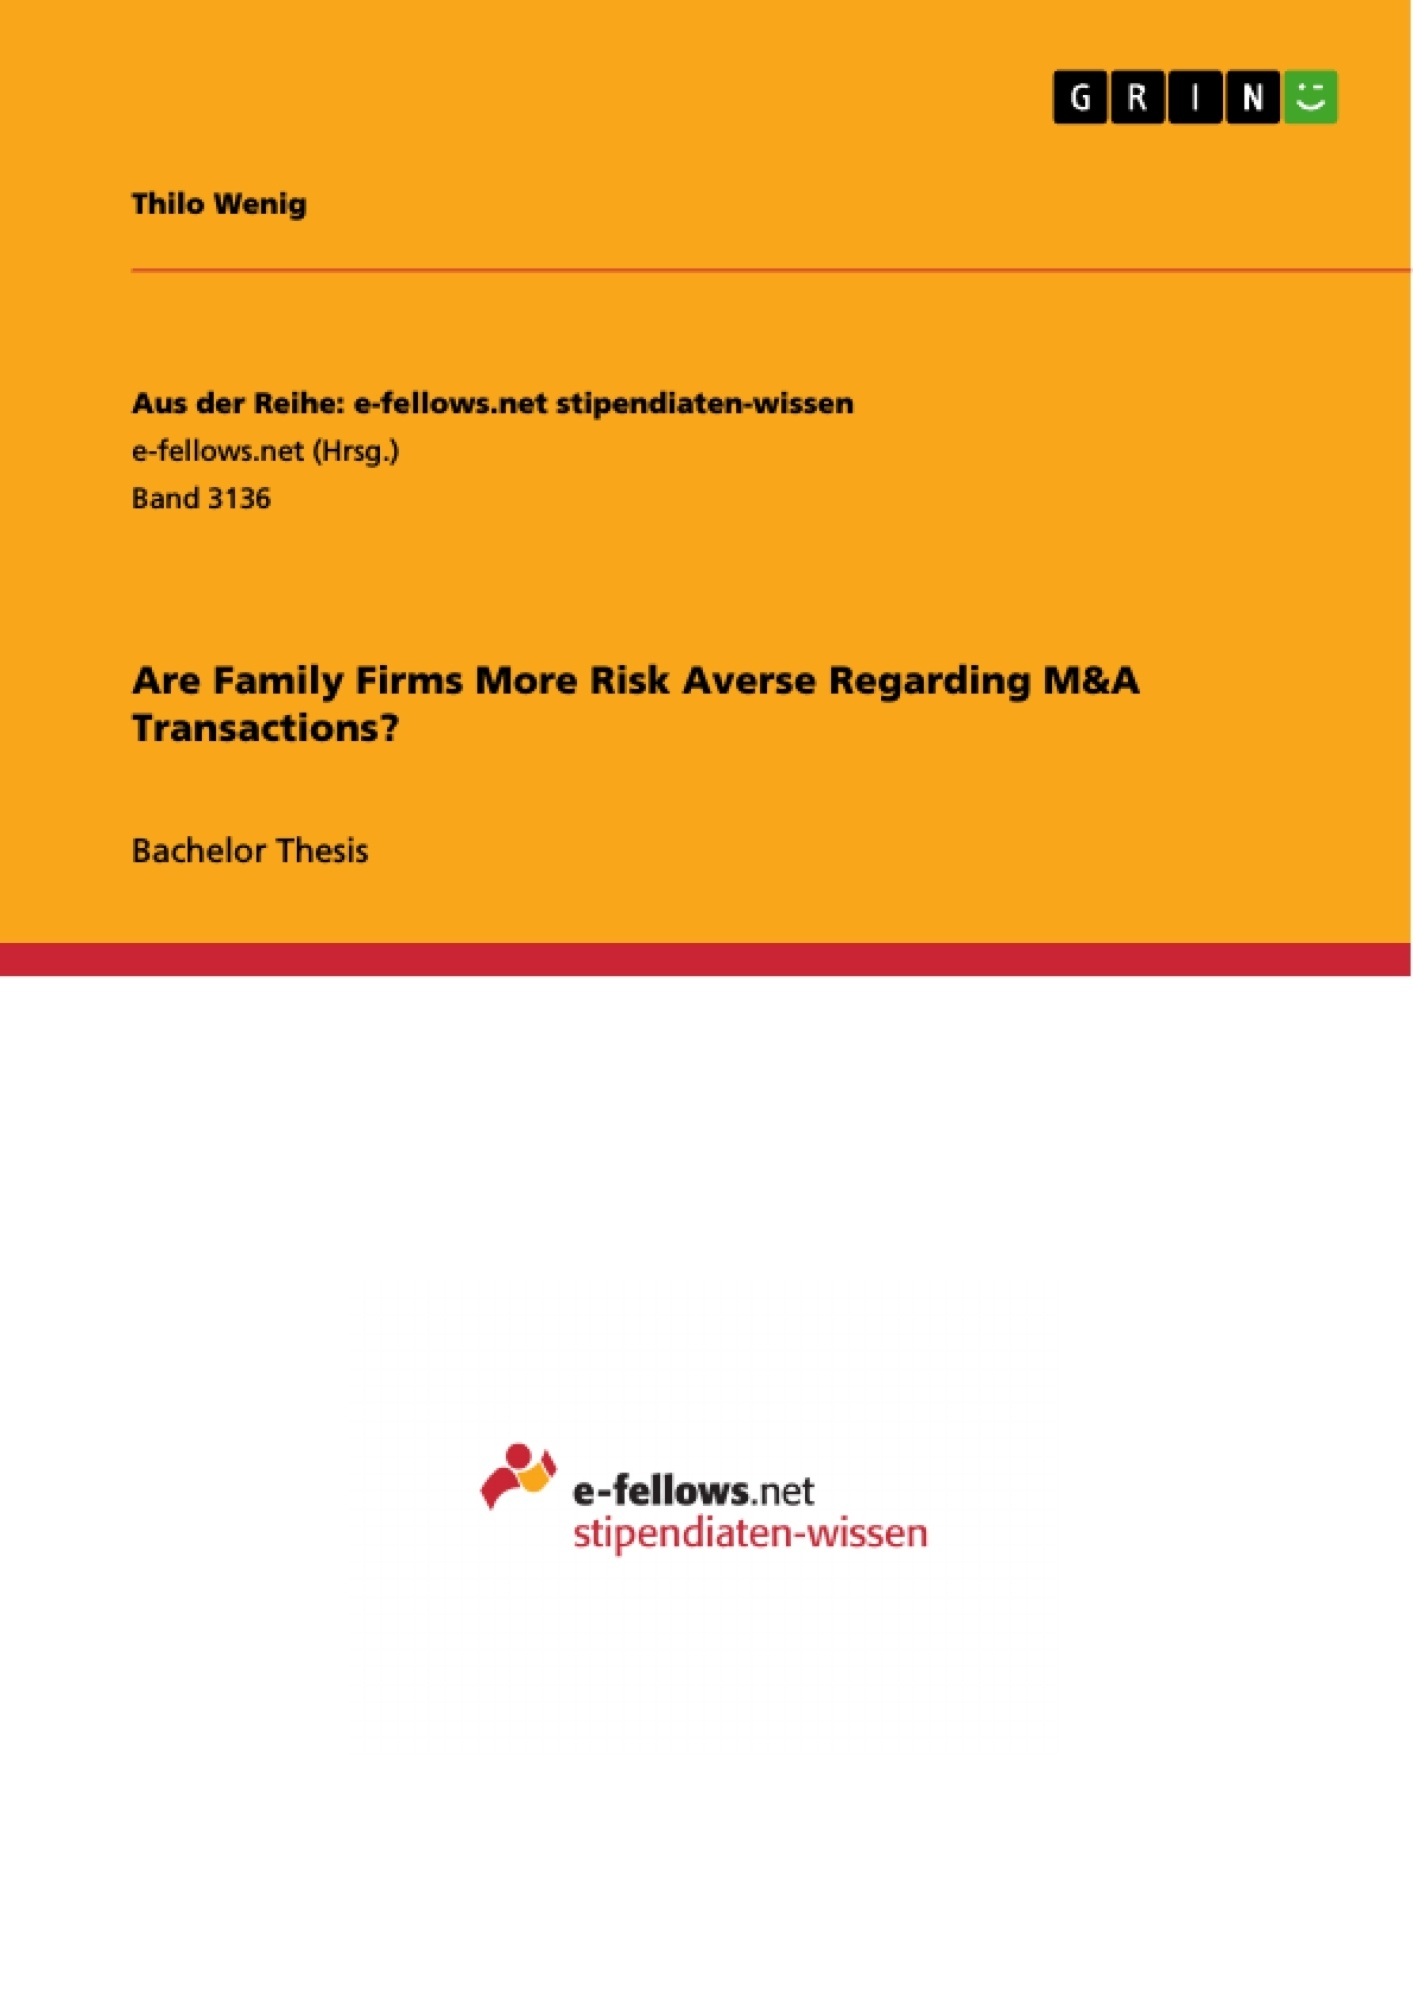 Title: Are Family Firms More Risk Averse Regarding M&A Transactions?